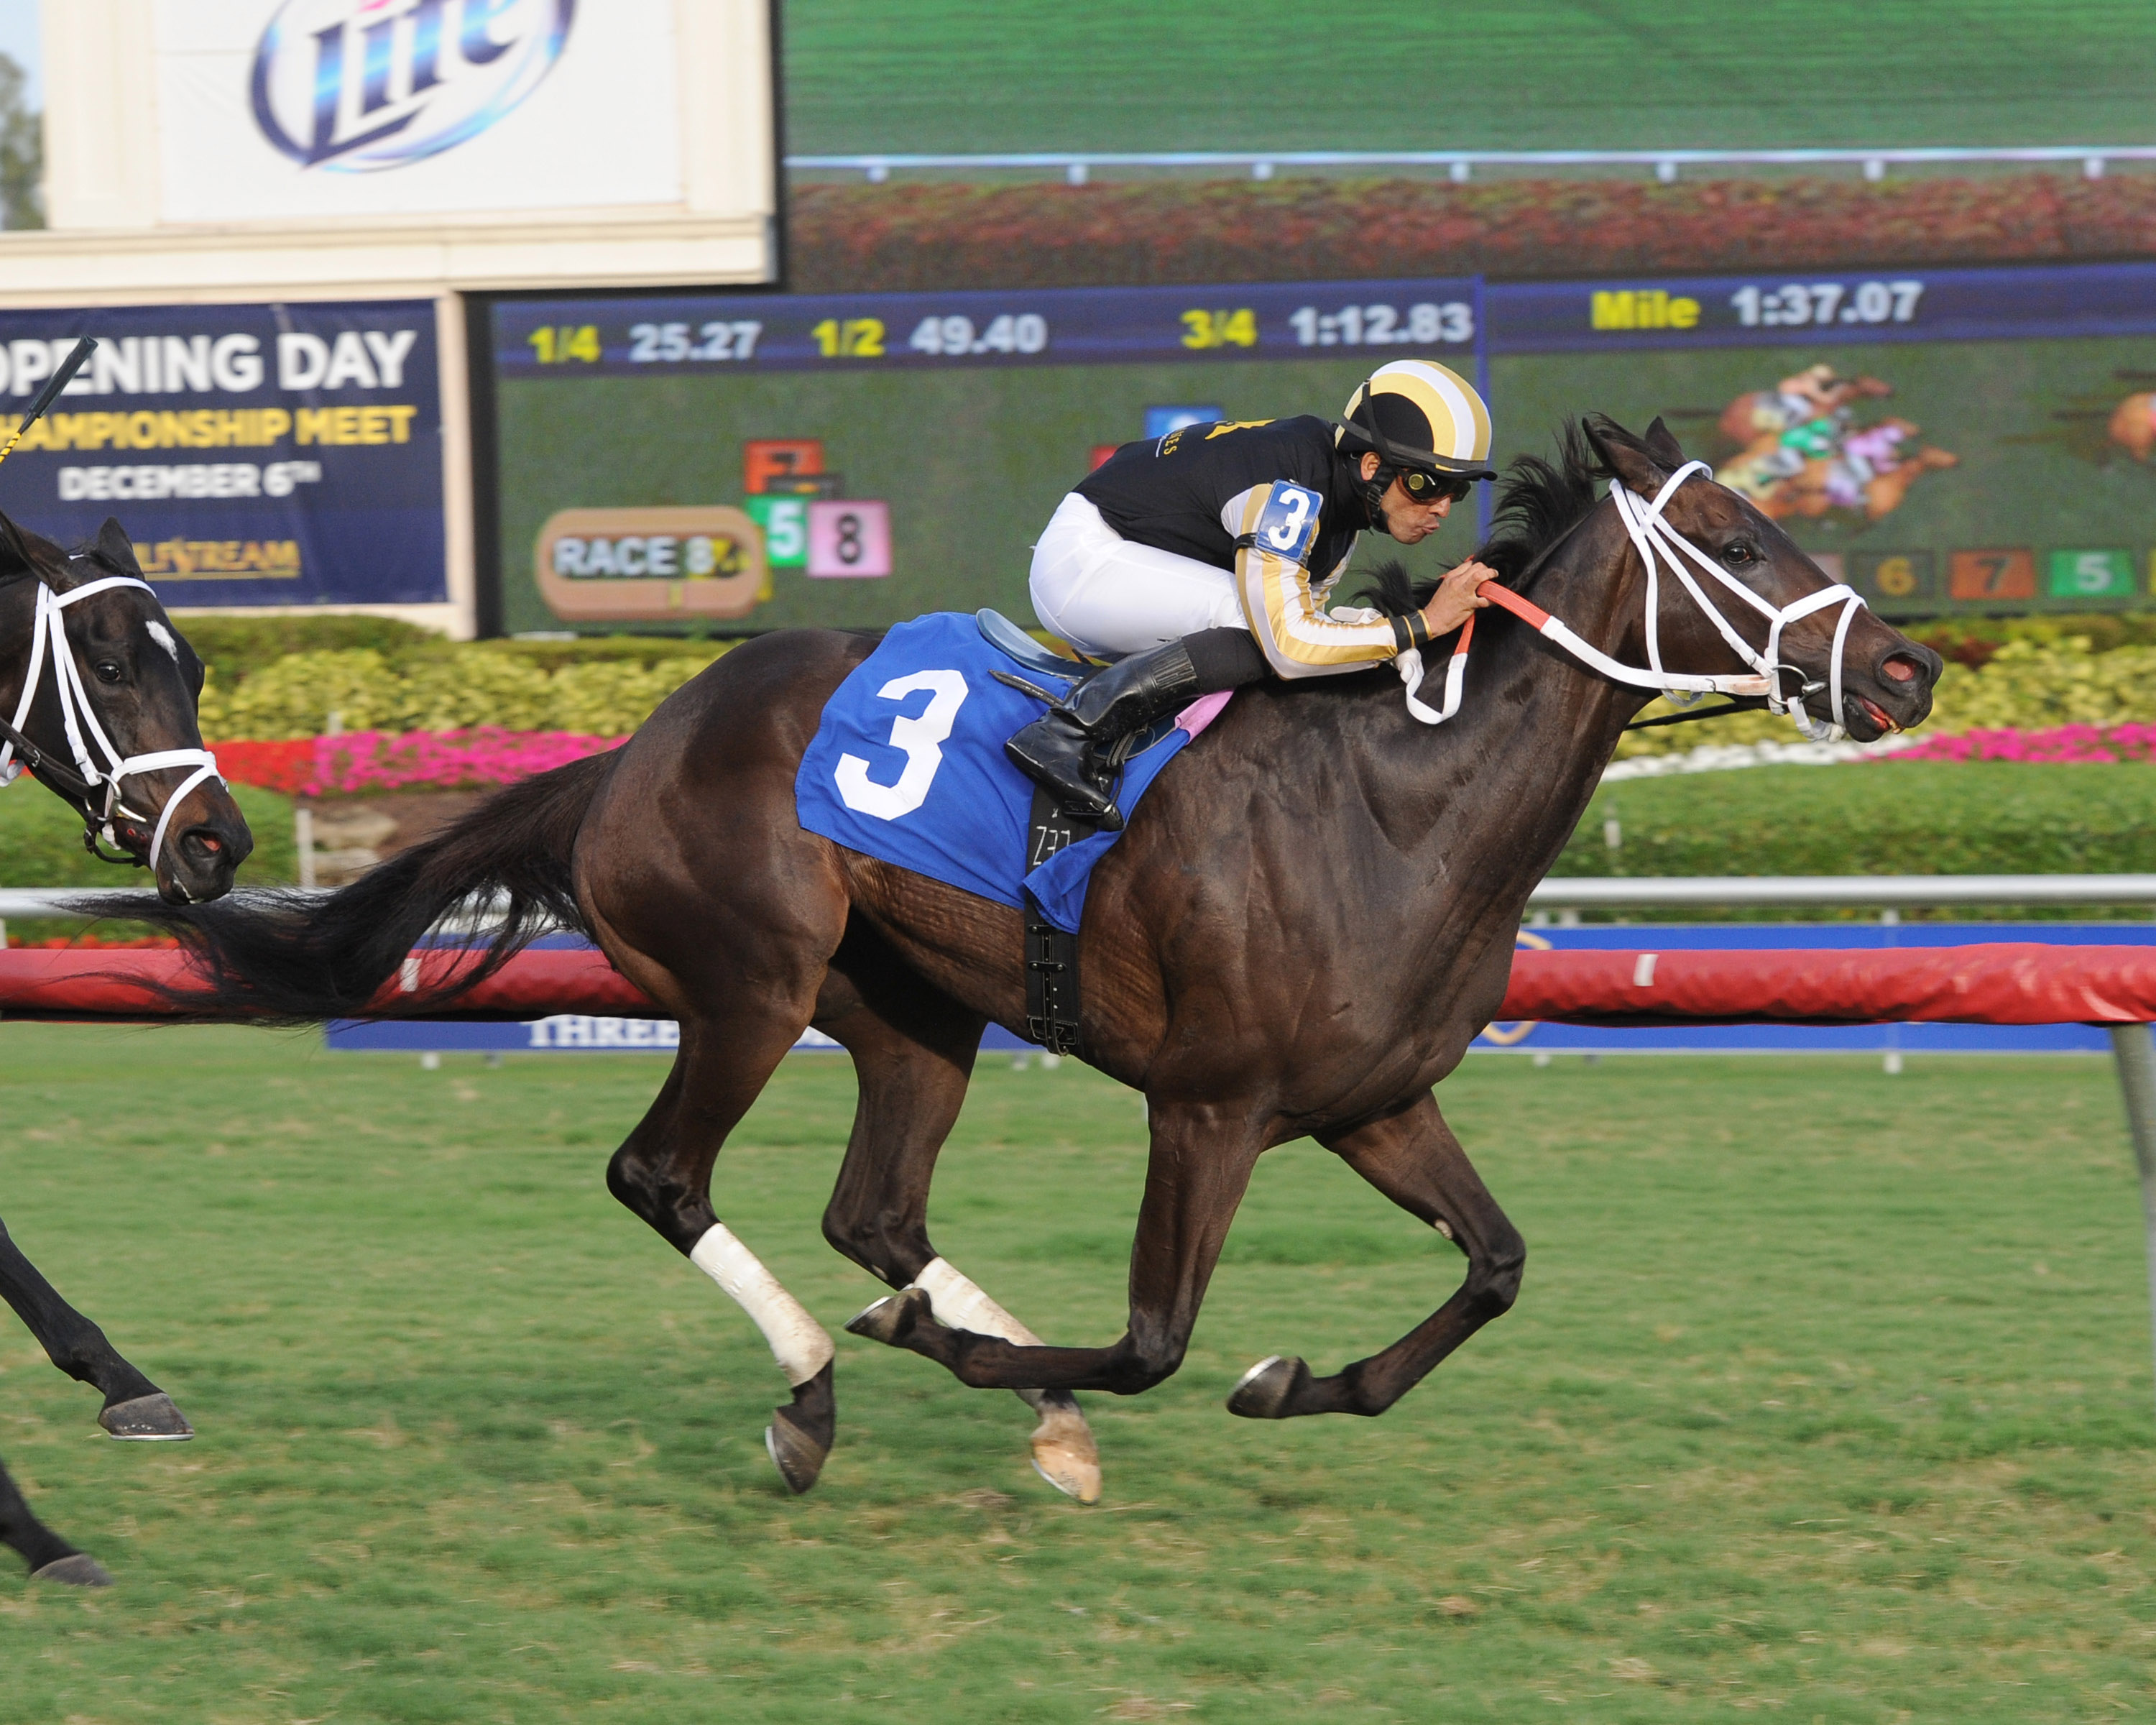 Union Prayer won an allowance at Gulfstream on December 23. Photo courtesy Leslie Martin